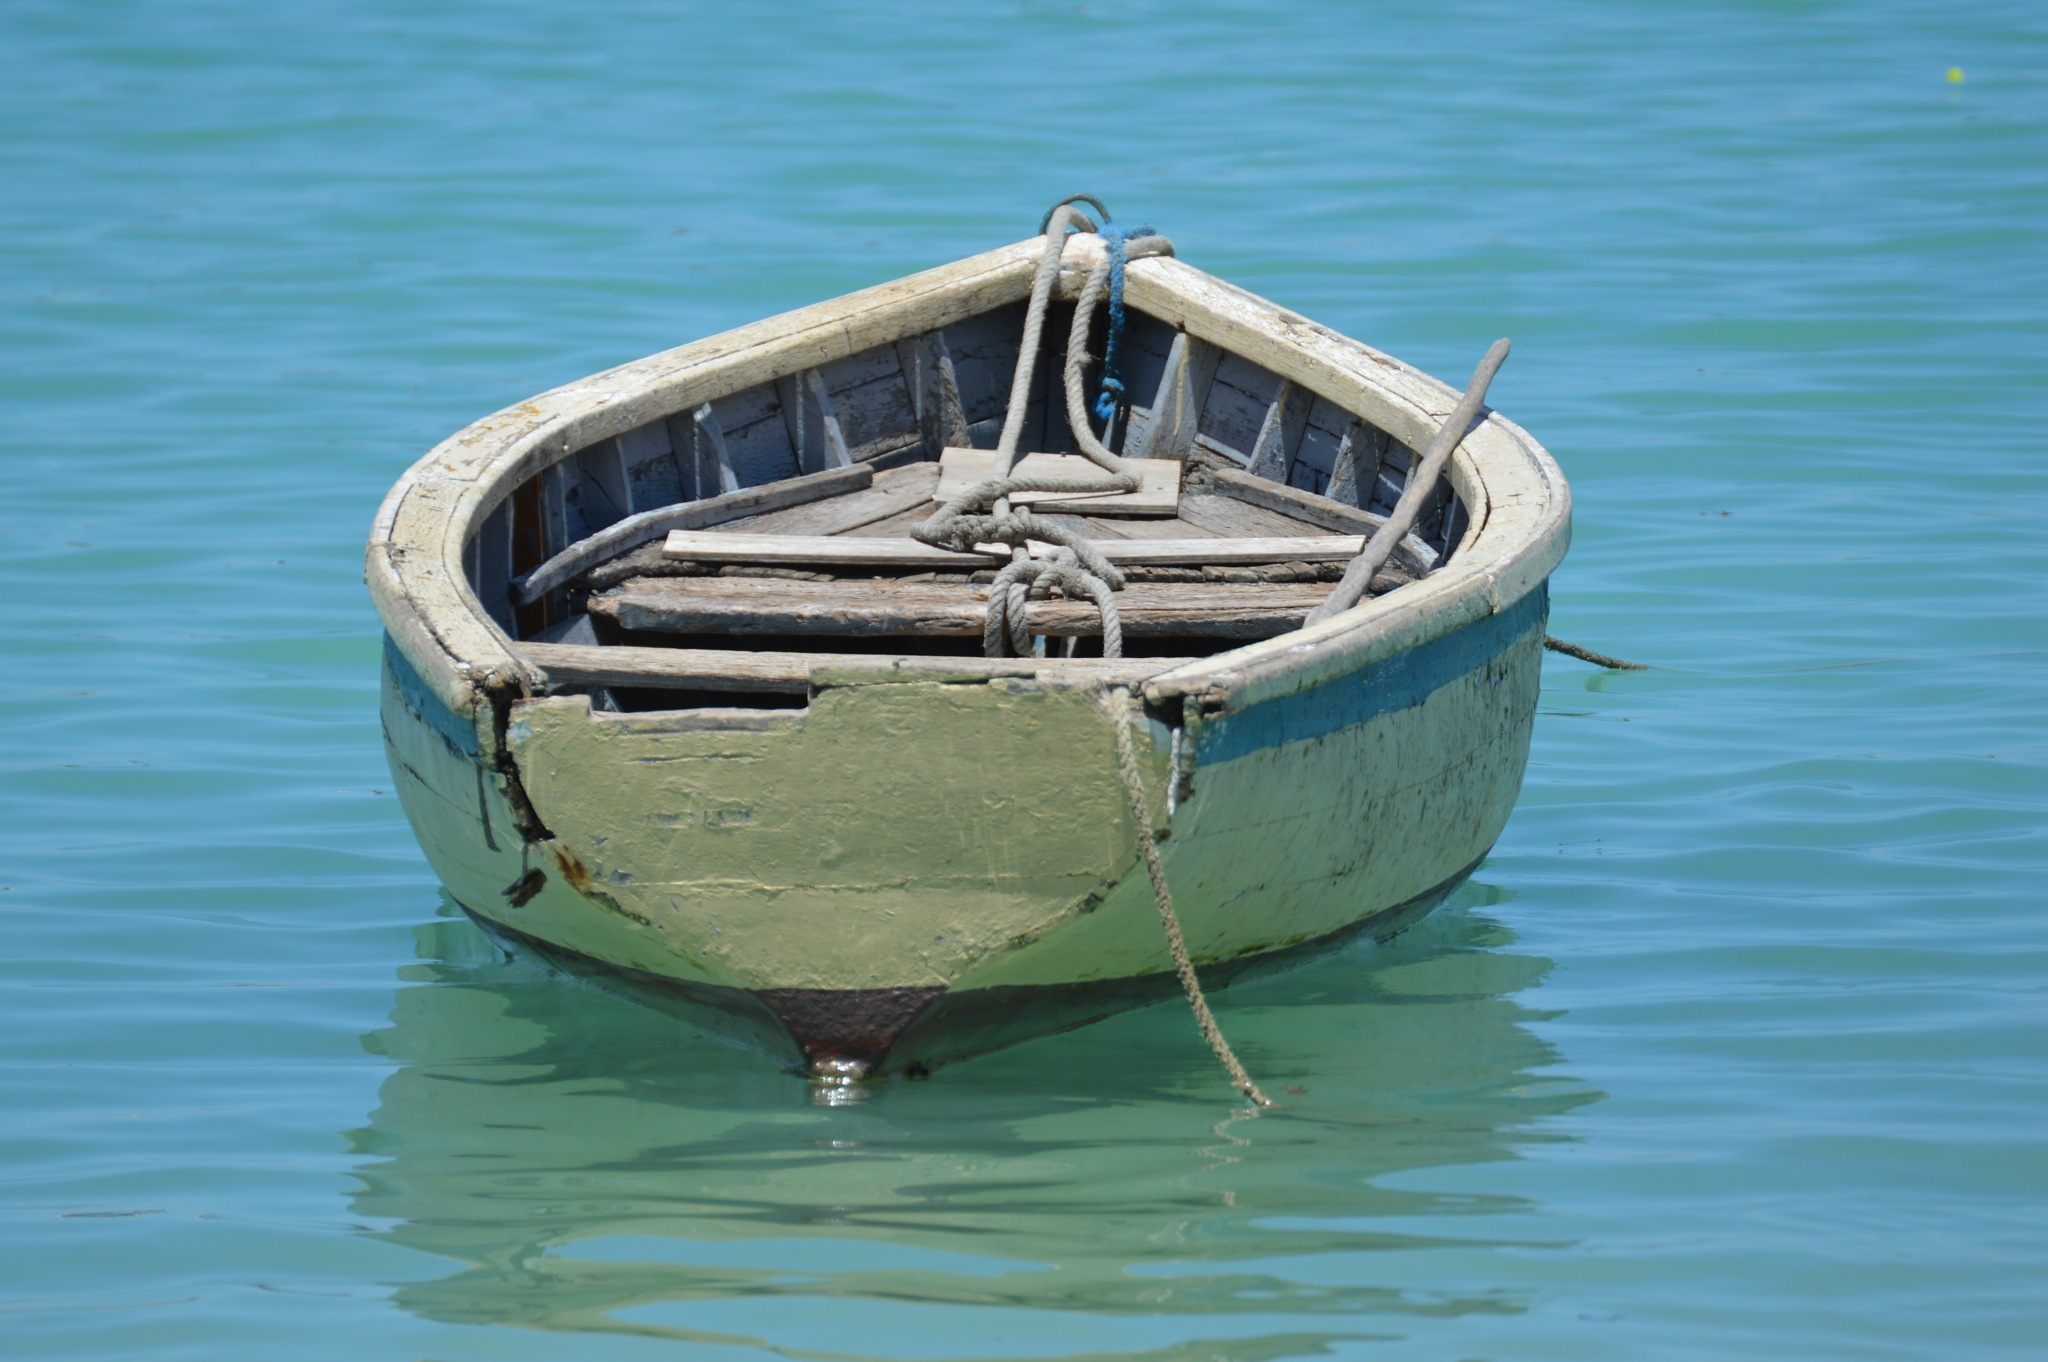 Boat (with blue) by Philippe Maseres